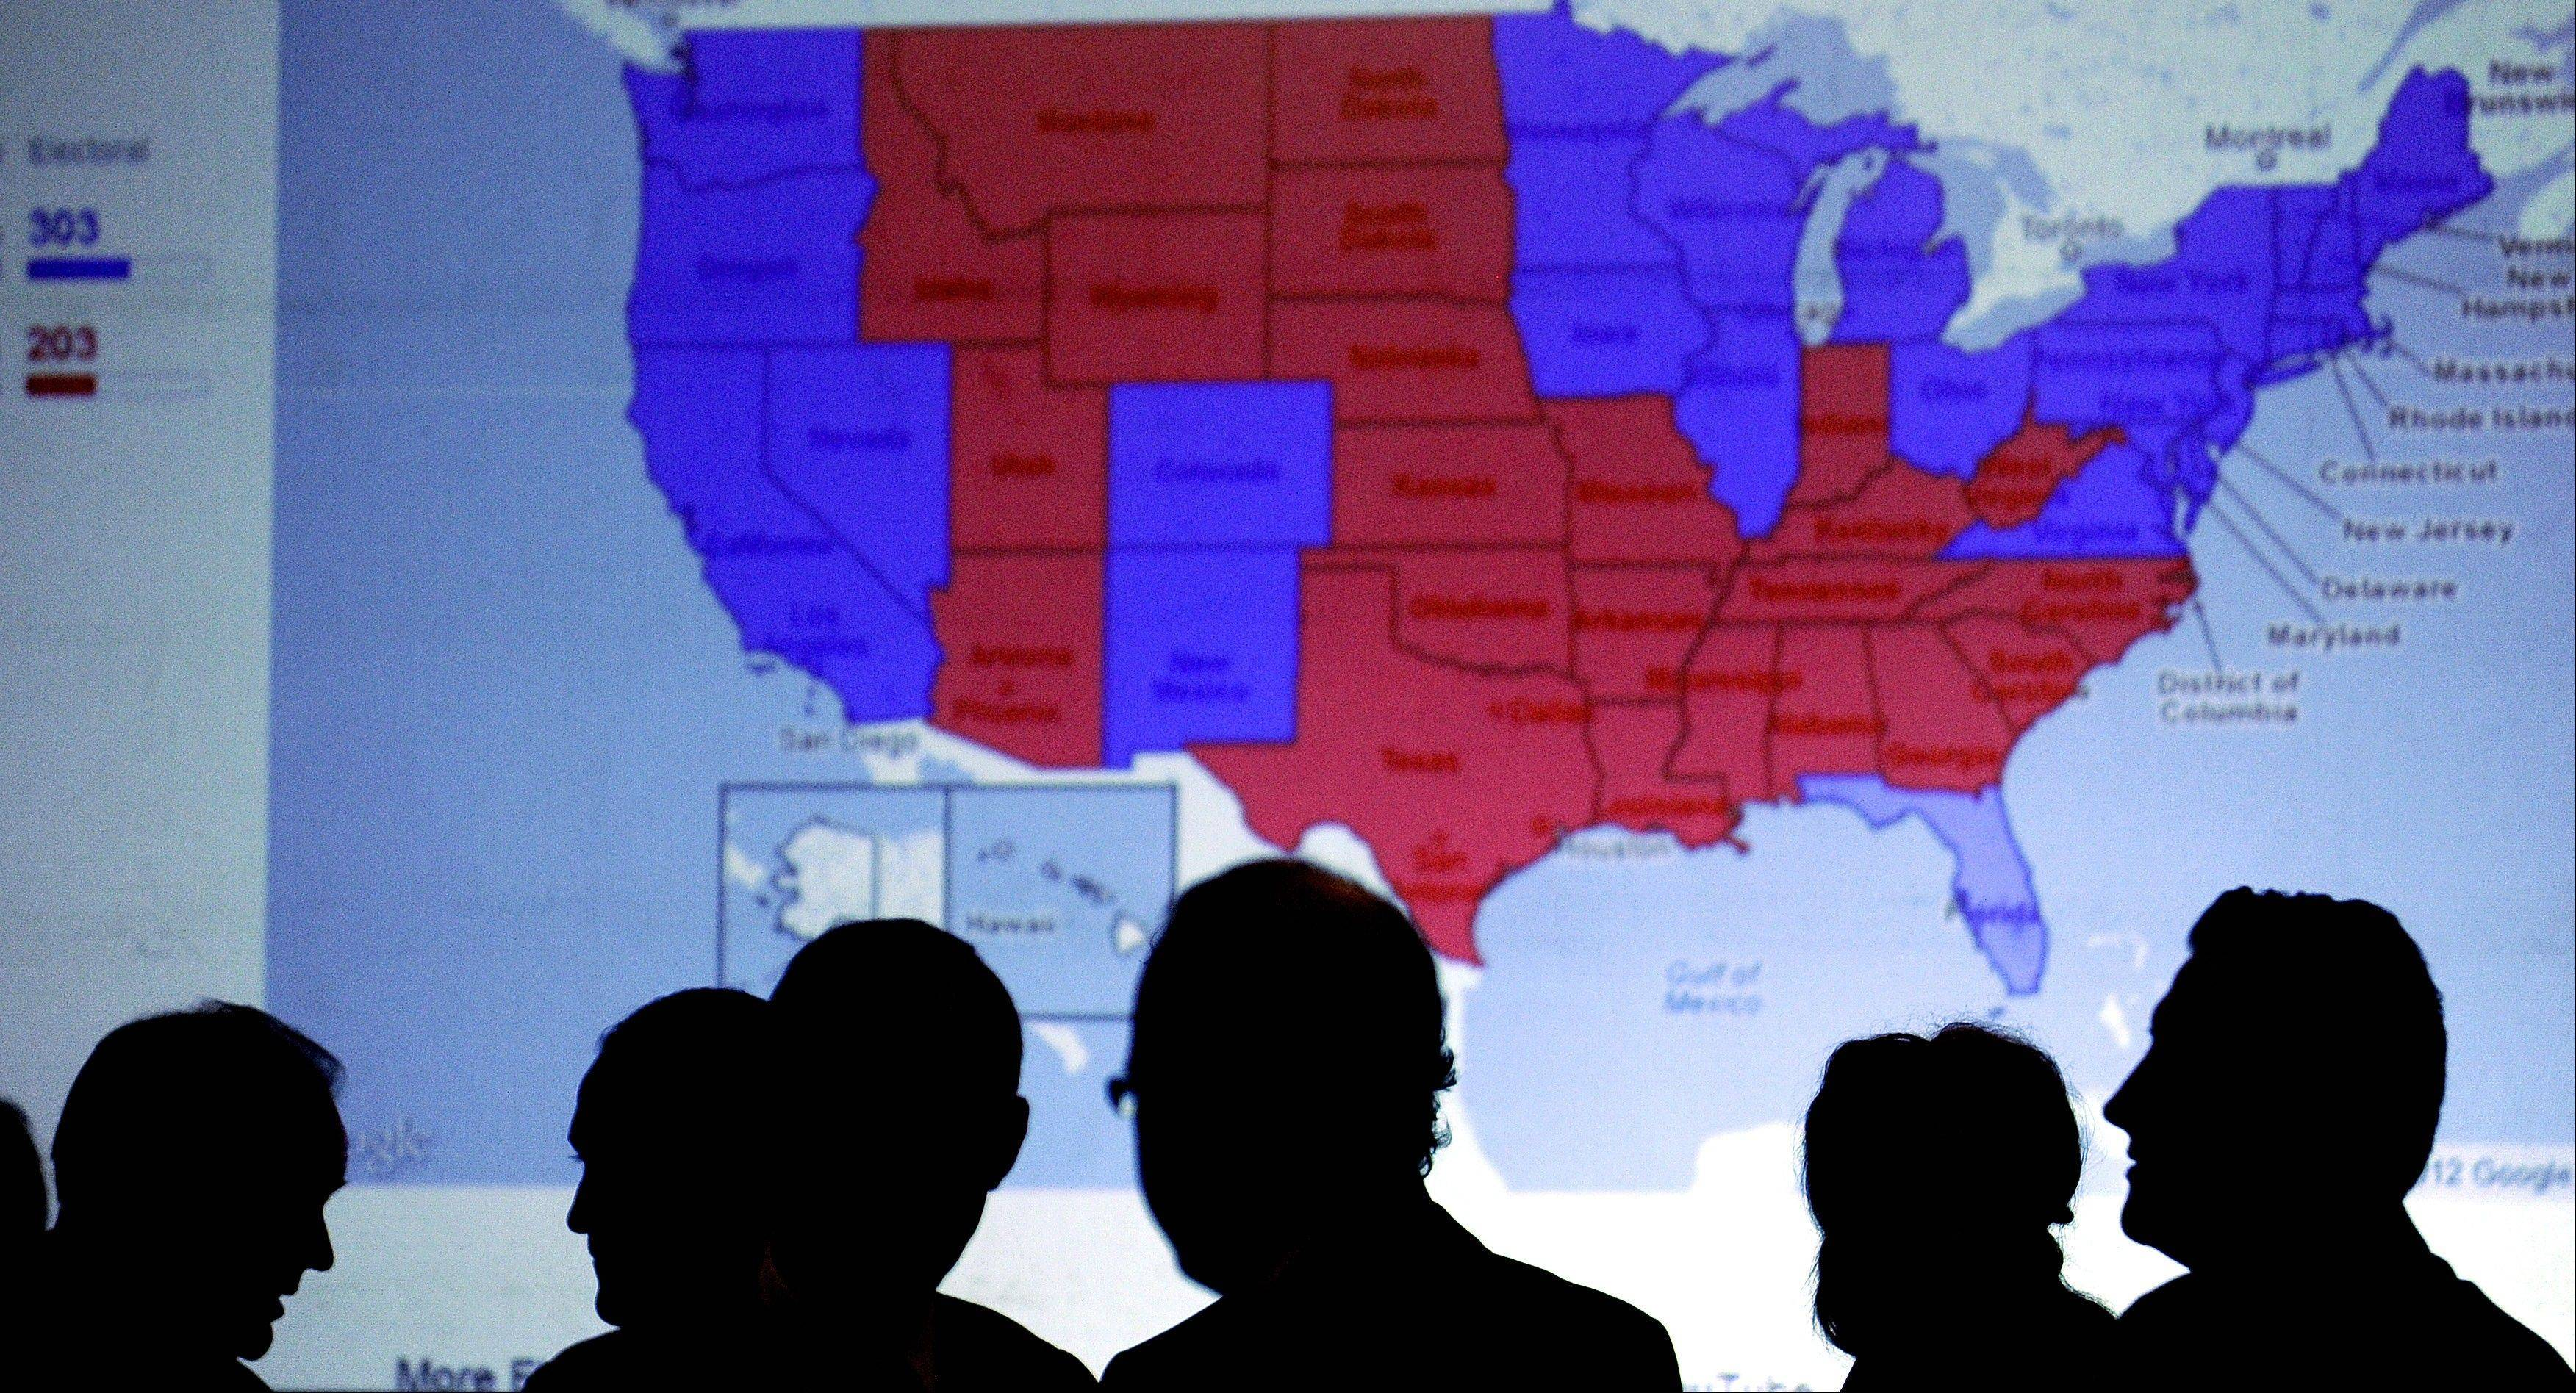 Nation's political divide is deepening